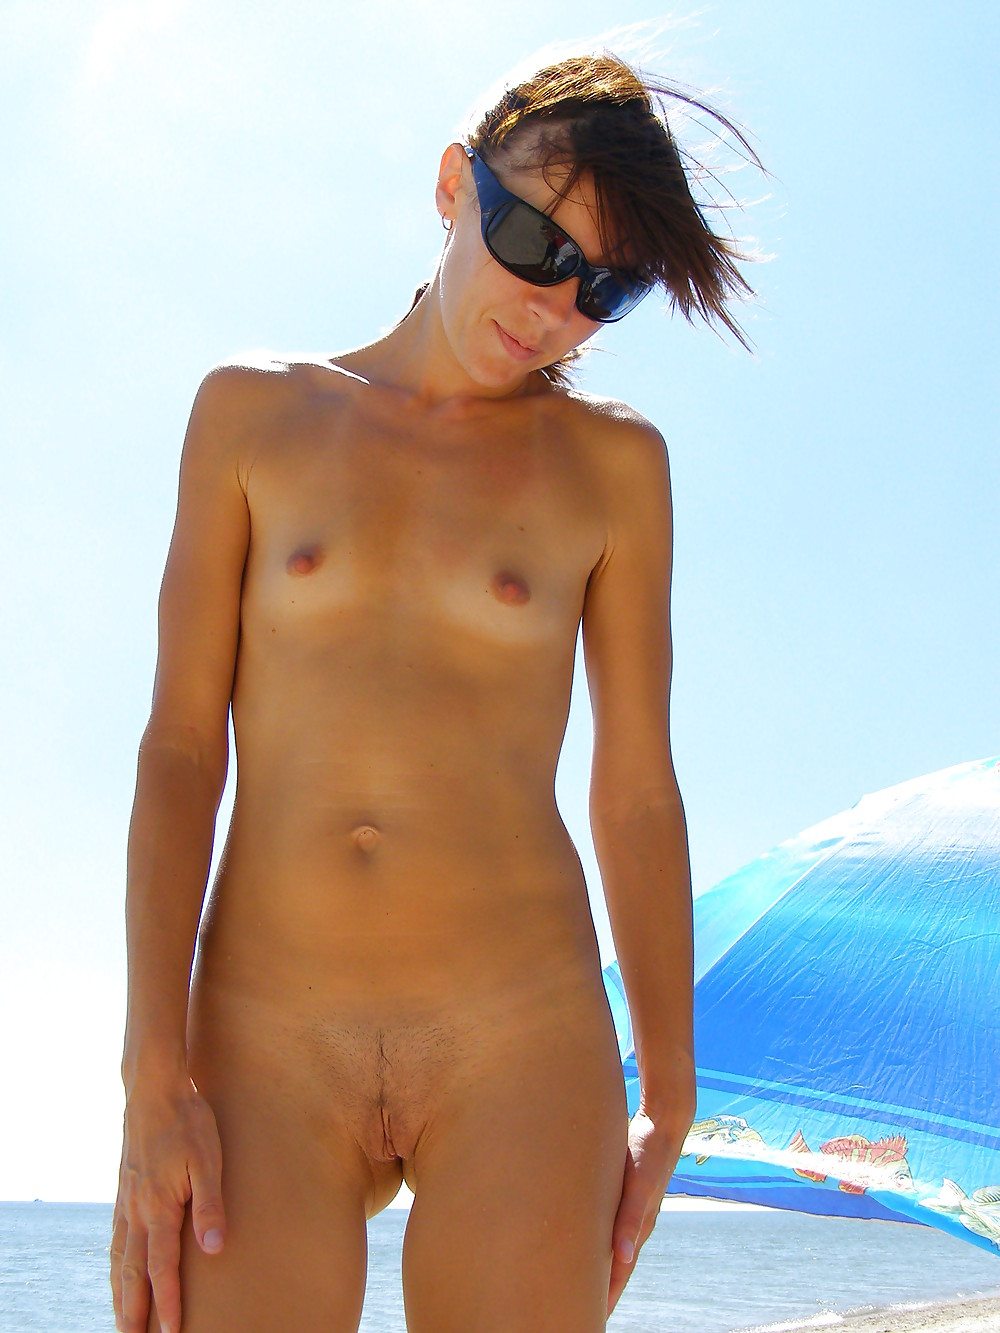 Skinny girl nude beach pics sucking guys testicals